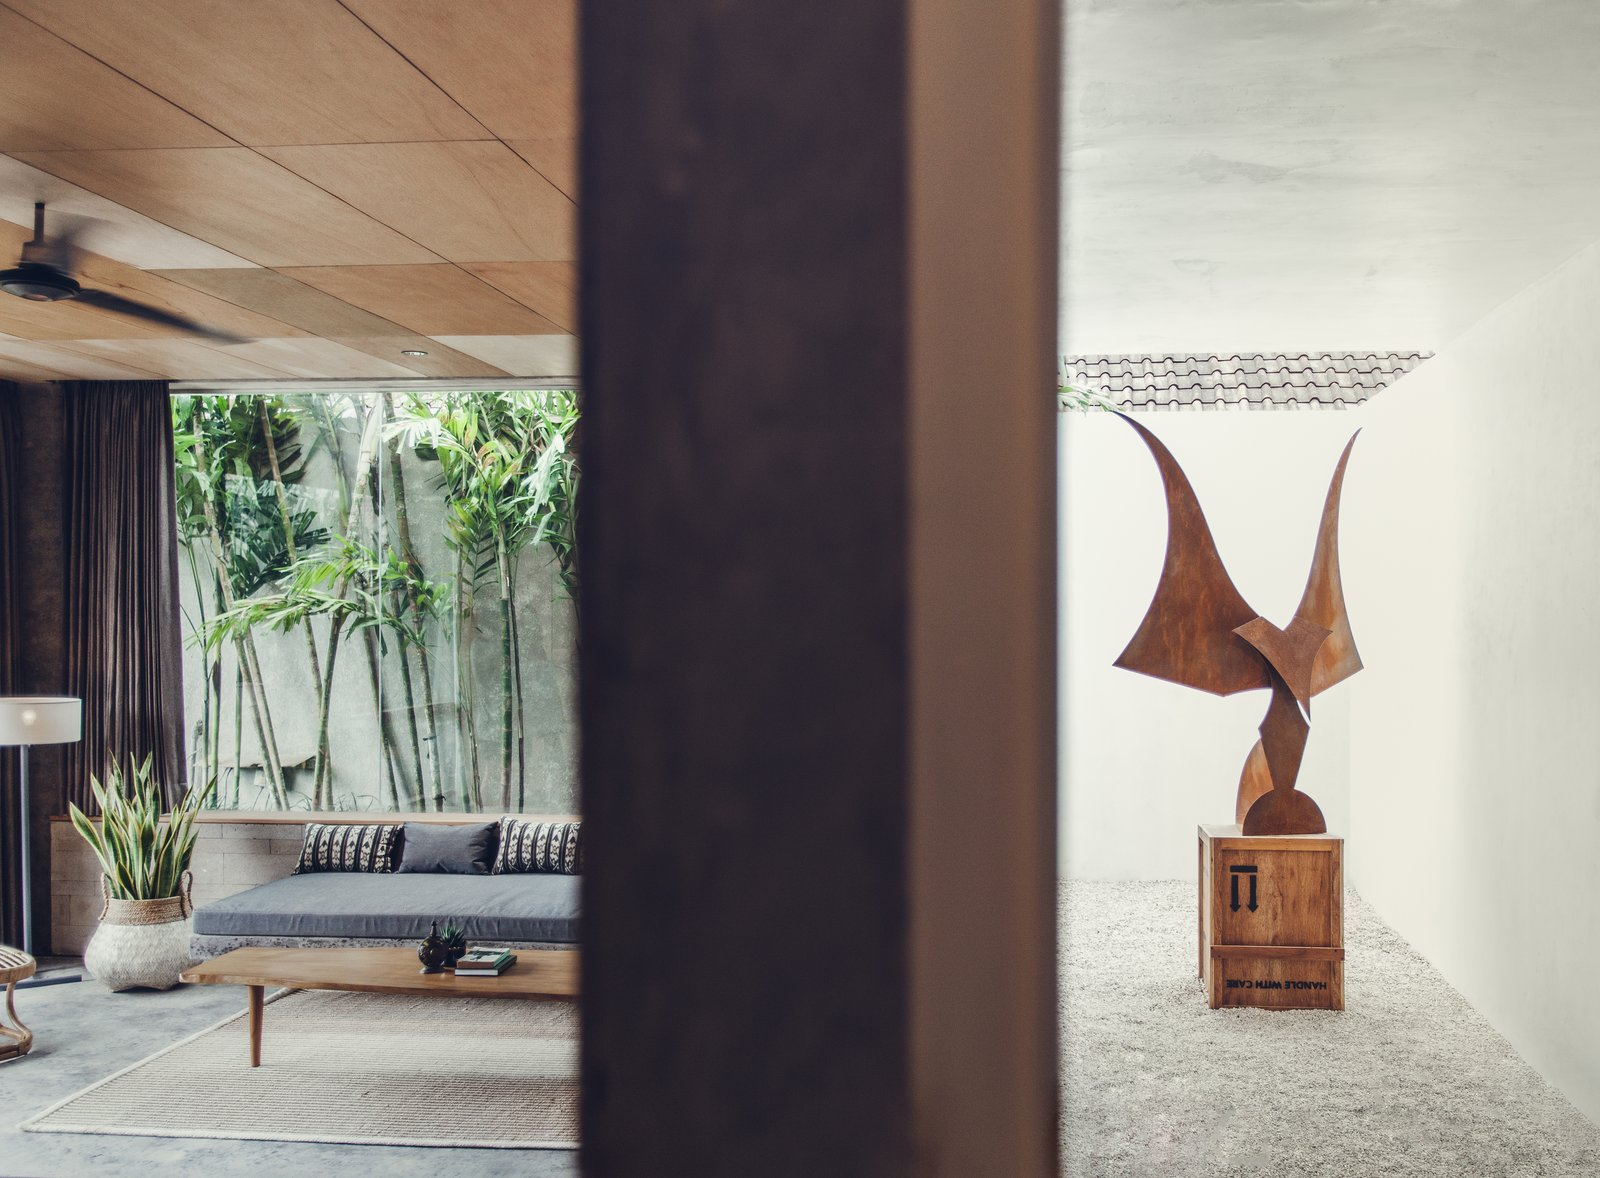 Living Room, Floor Lighting, Bench, Coffee Tables, Concrete Floor, Rug Floor, Lamps, and Recessed Lighting Garuda of Death Metal by Madsaki is a featured piece.  The Slow from Go Beyond the Basics in an Australian Fashion Designer's Surf-Inspired Bali Hotel